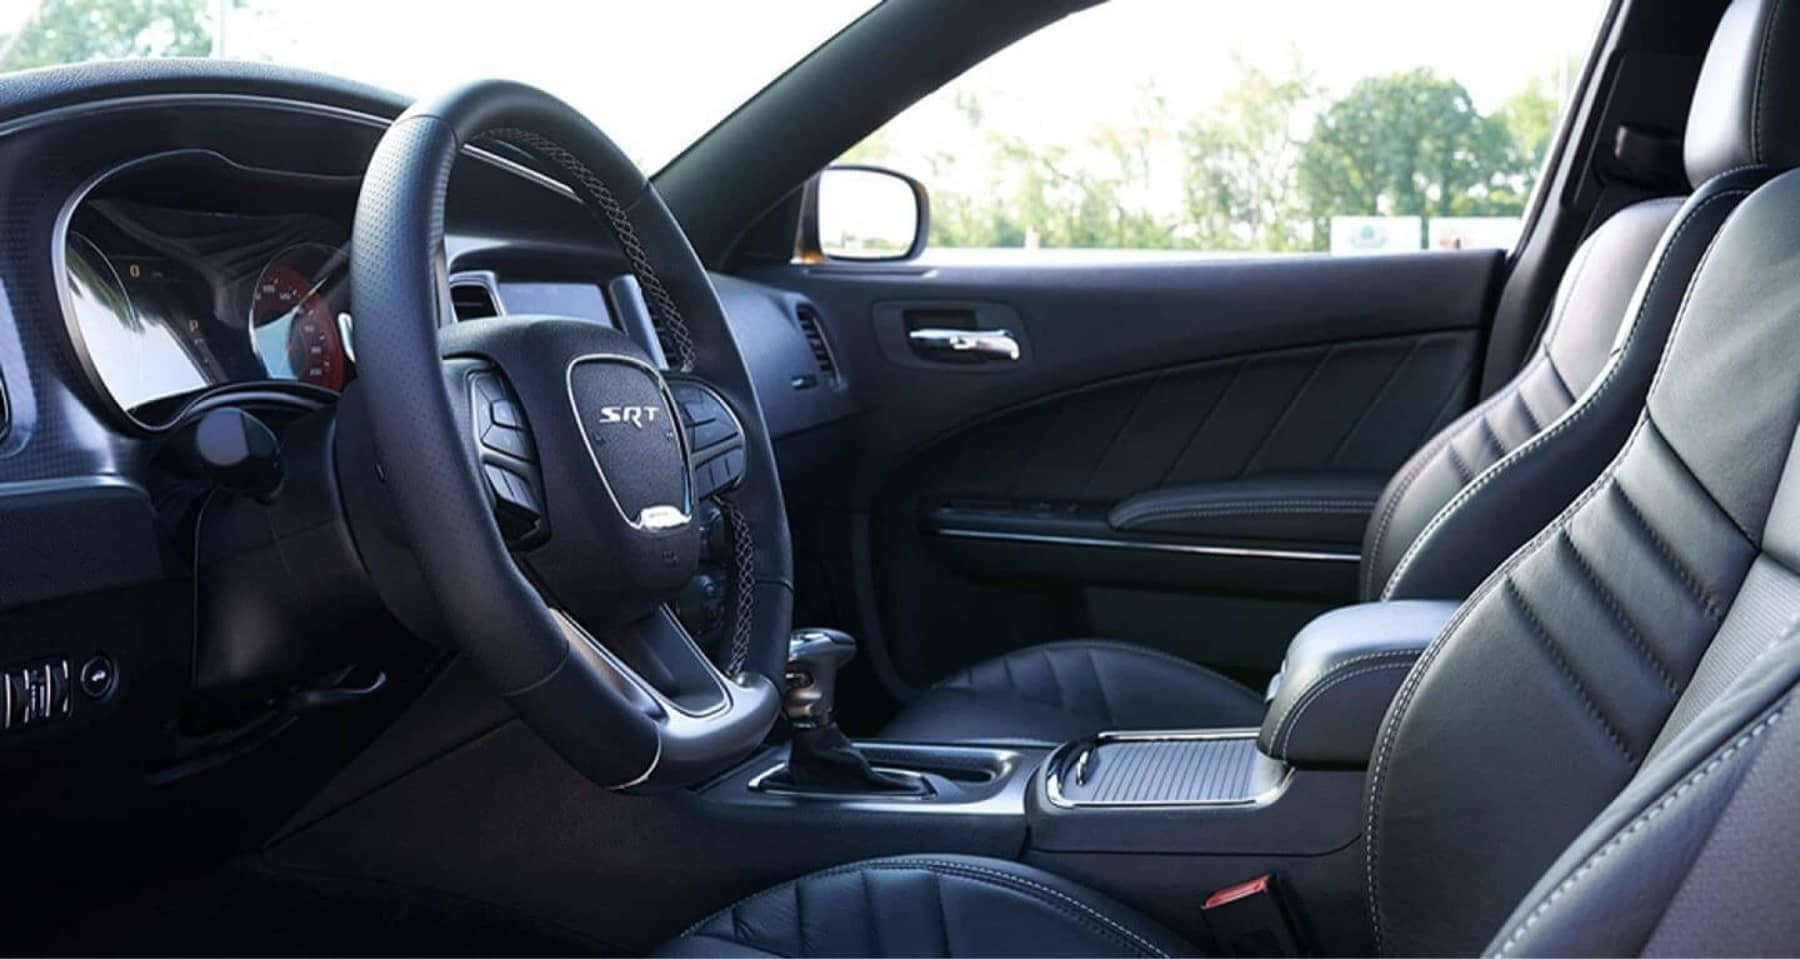 2020-charger-interior